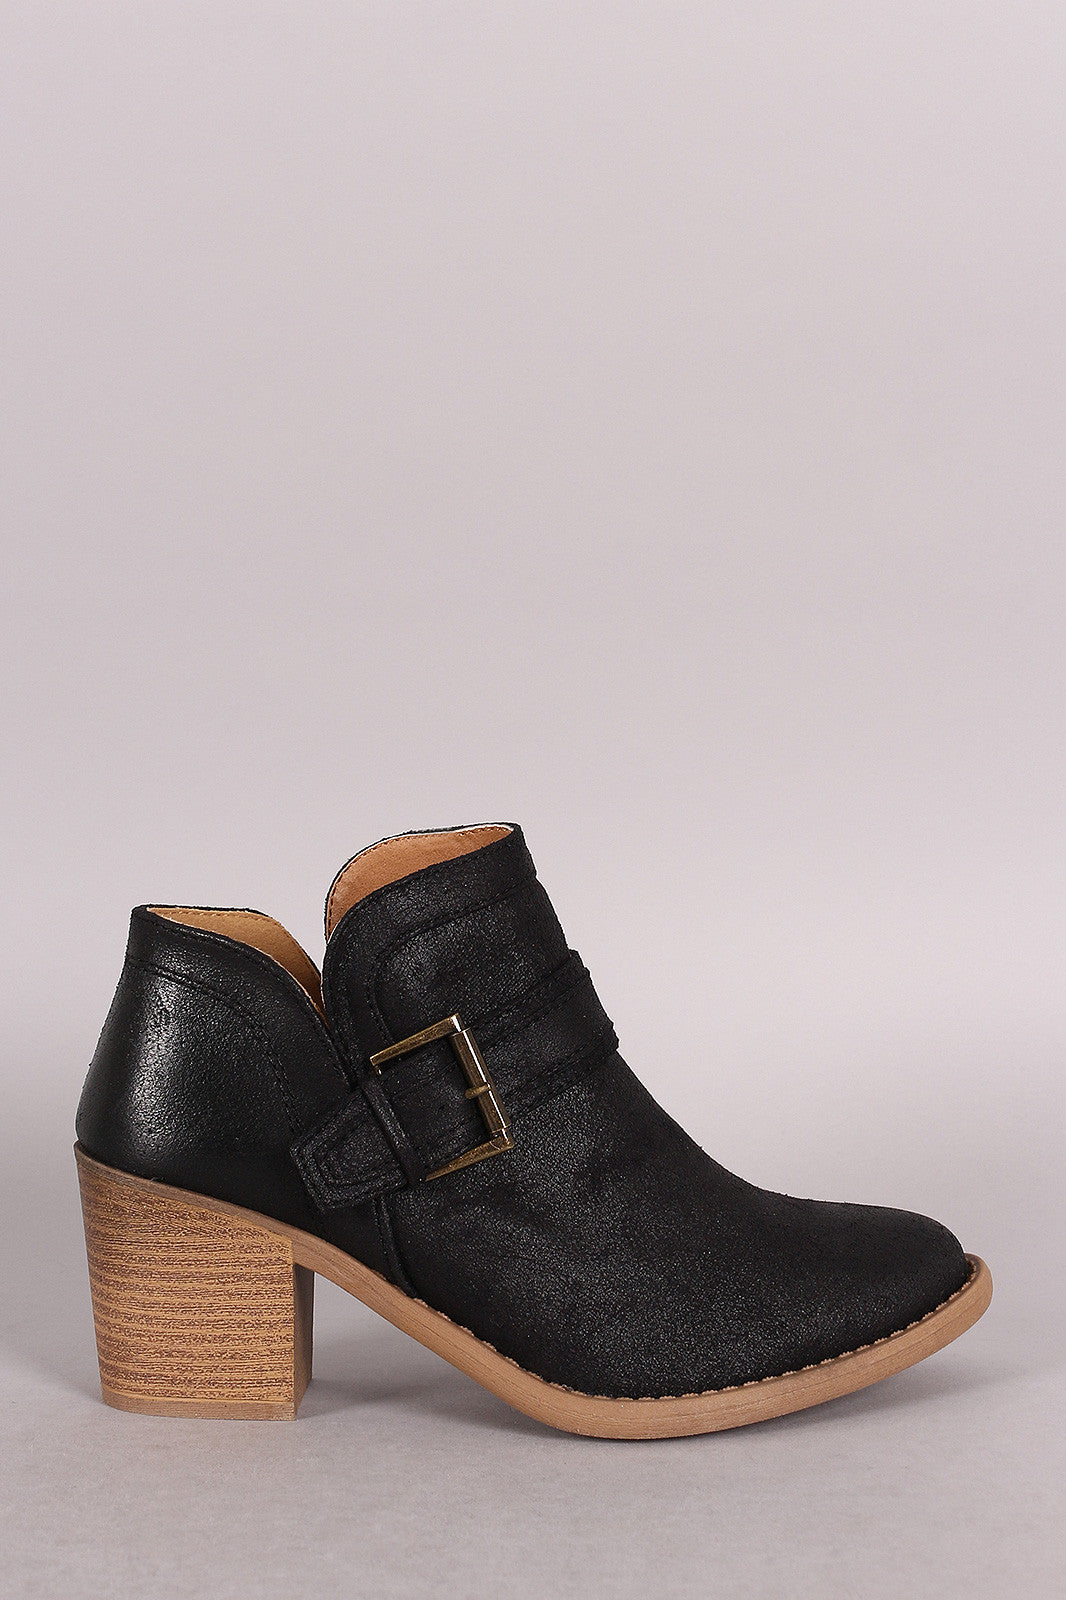 Qupid Buckled Cowgirl Chunky Heeled Booties - Thick 'N' Curvy Shop - 5